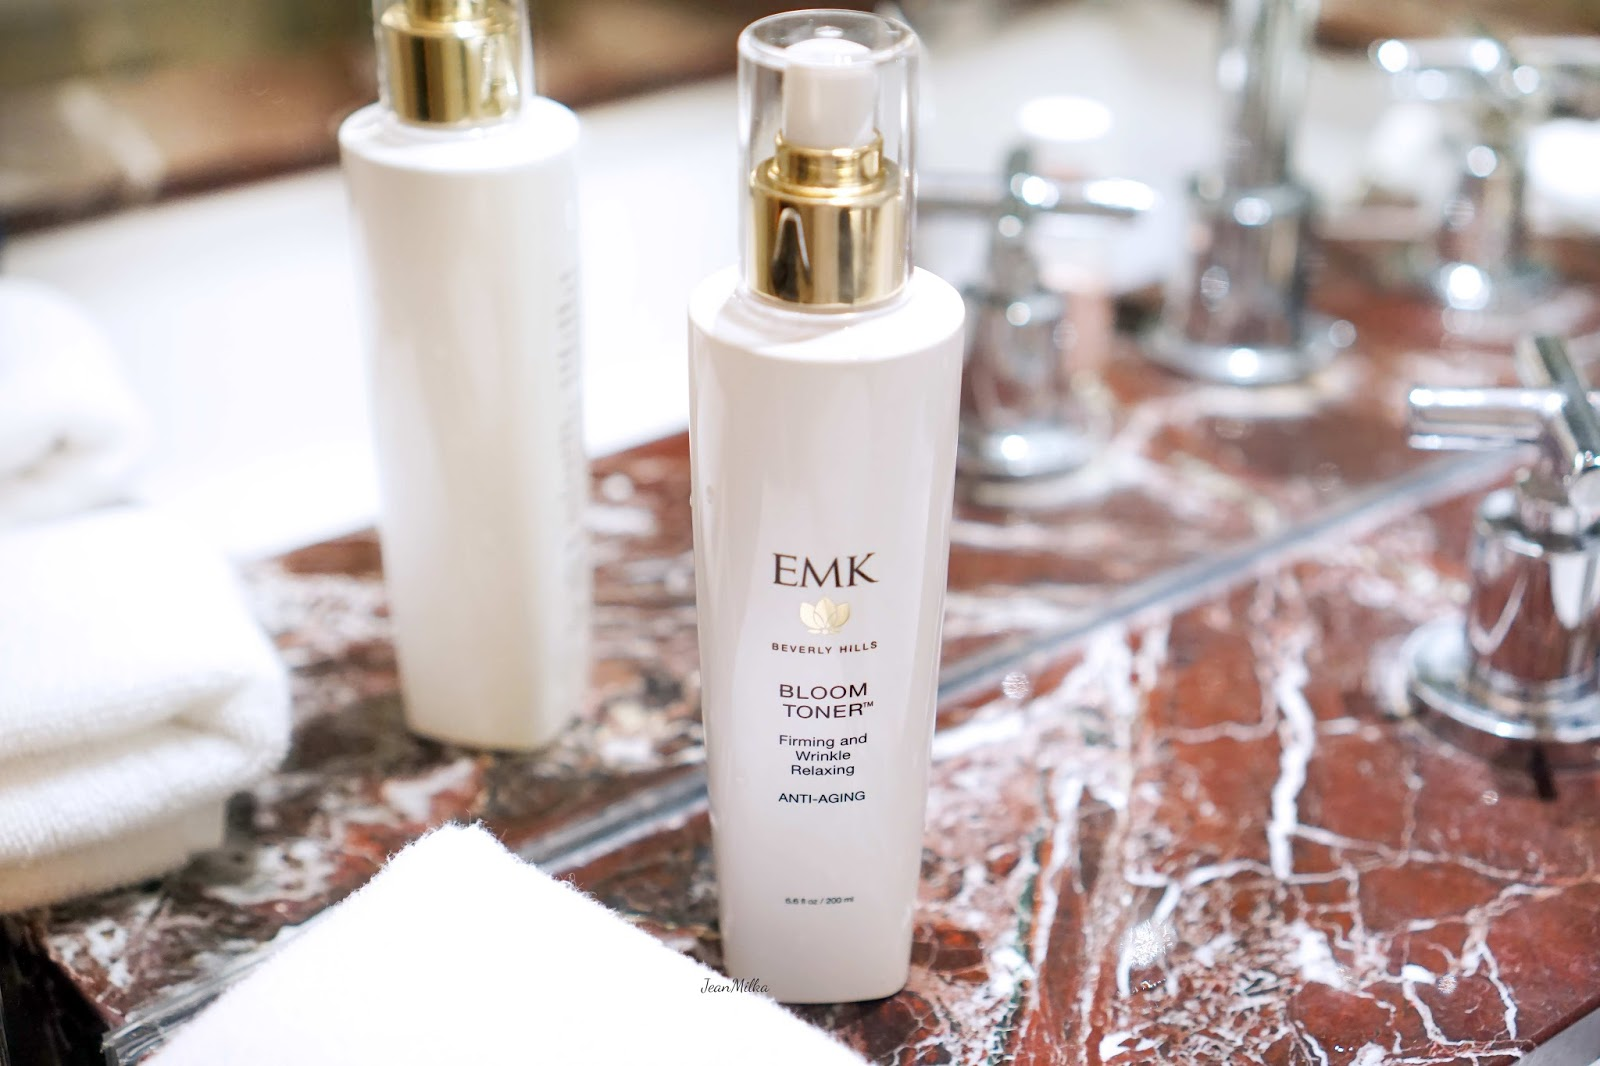 emk, emk beverly hills, review emk beverly hills, emk beverly hills skincare, skicare, review, product review, acne skincare, kulit berjerawat, emk bloom toner